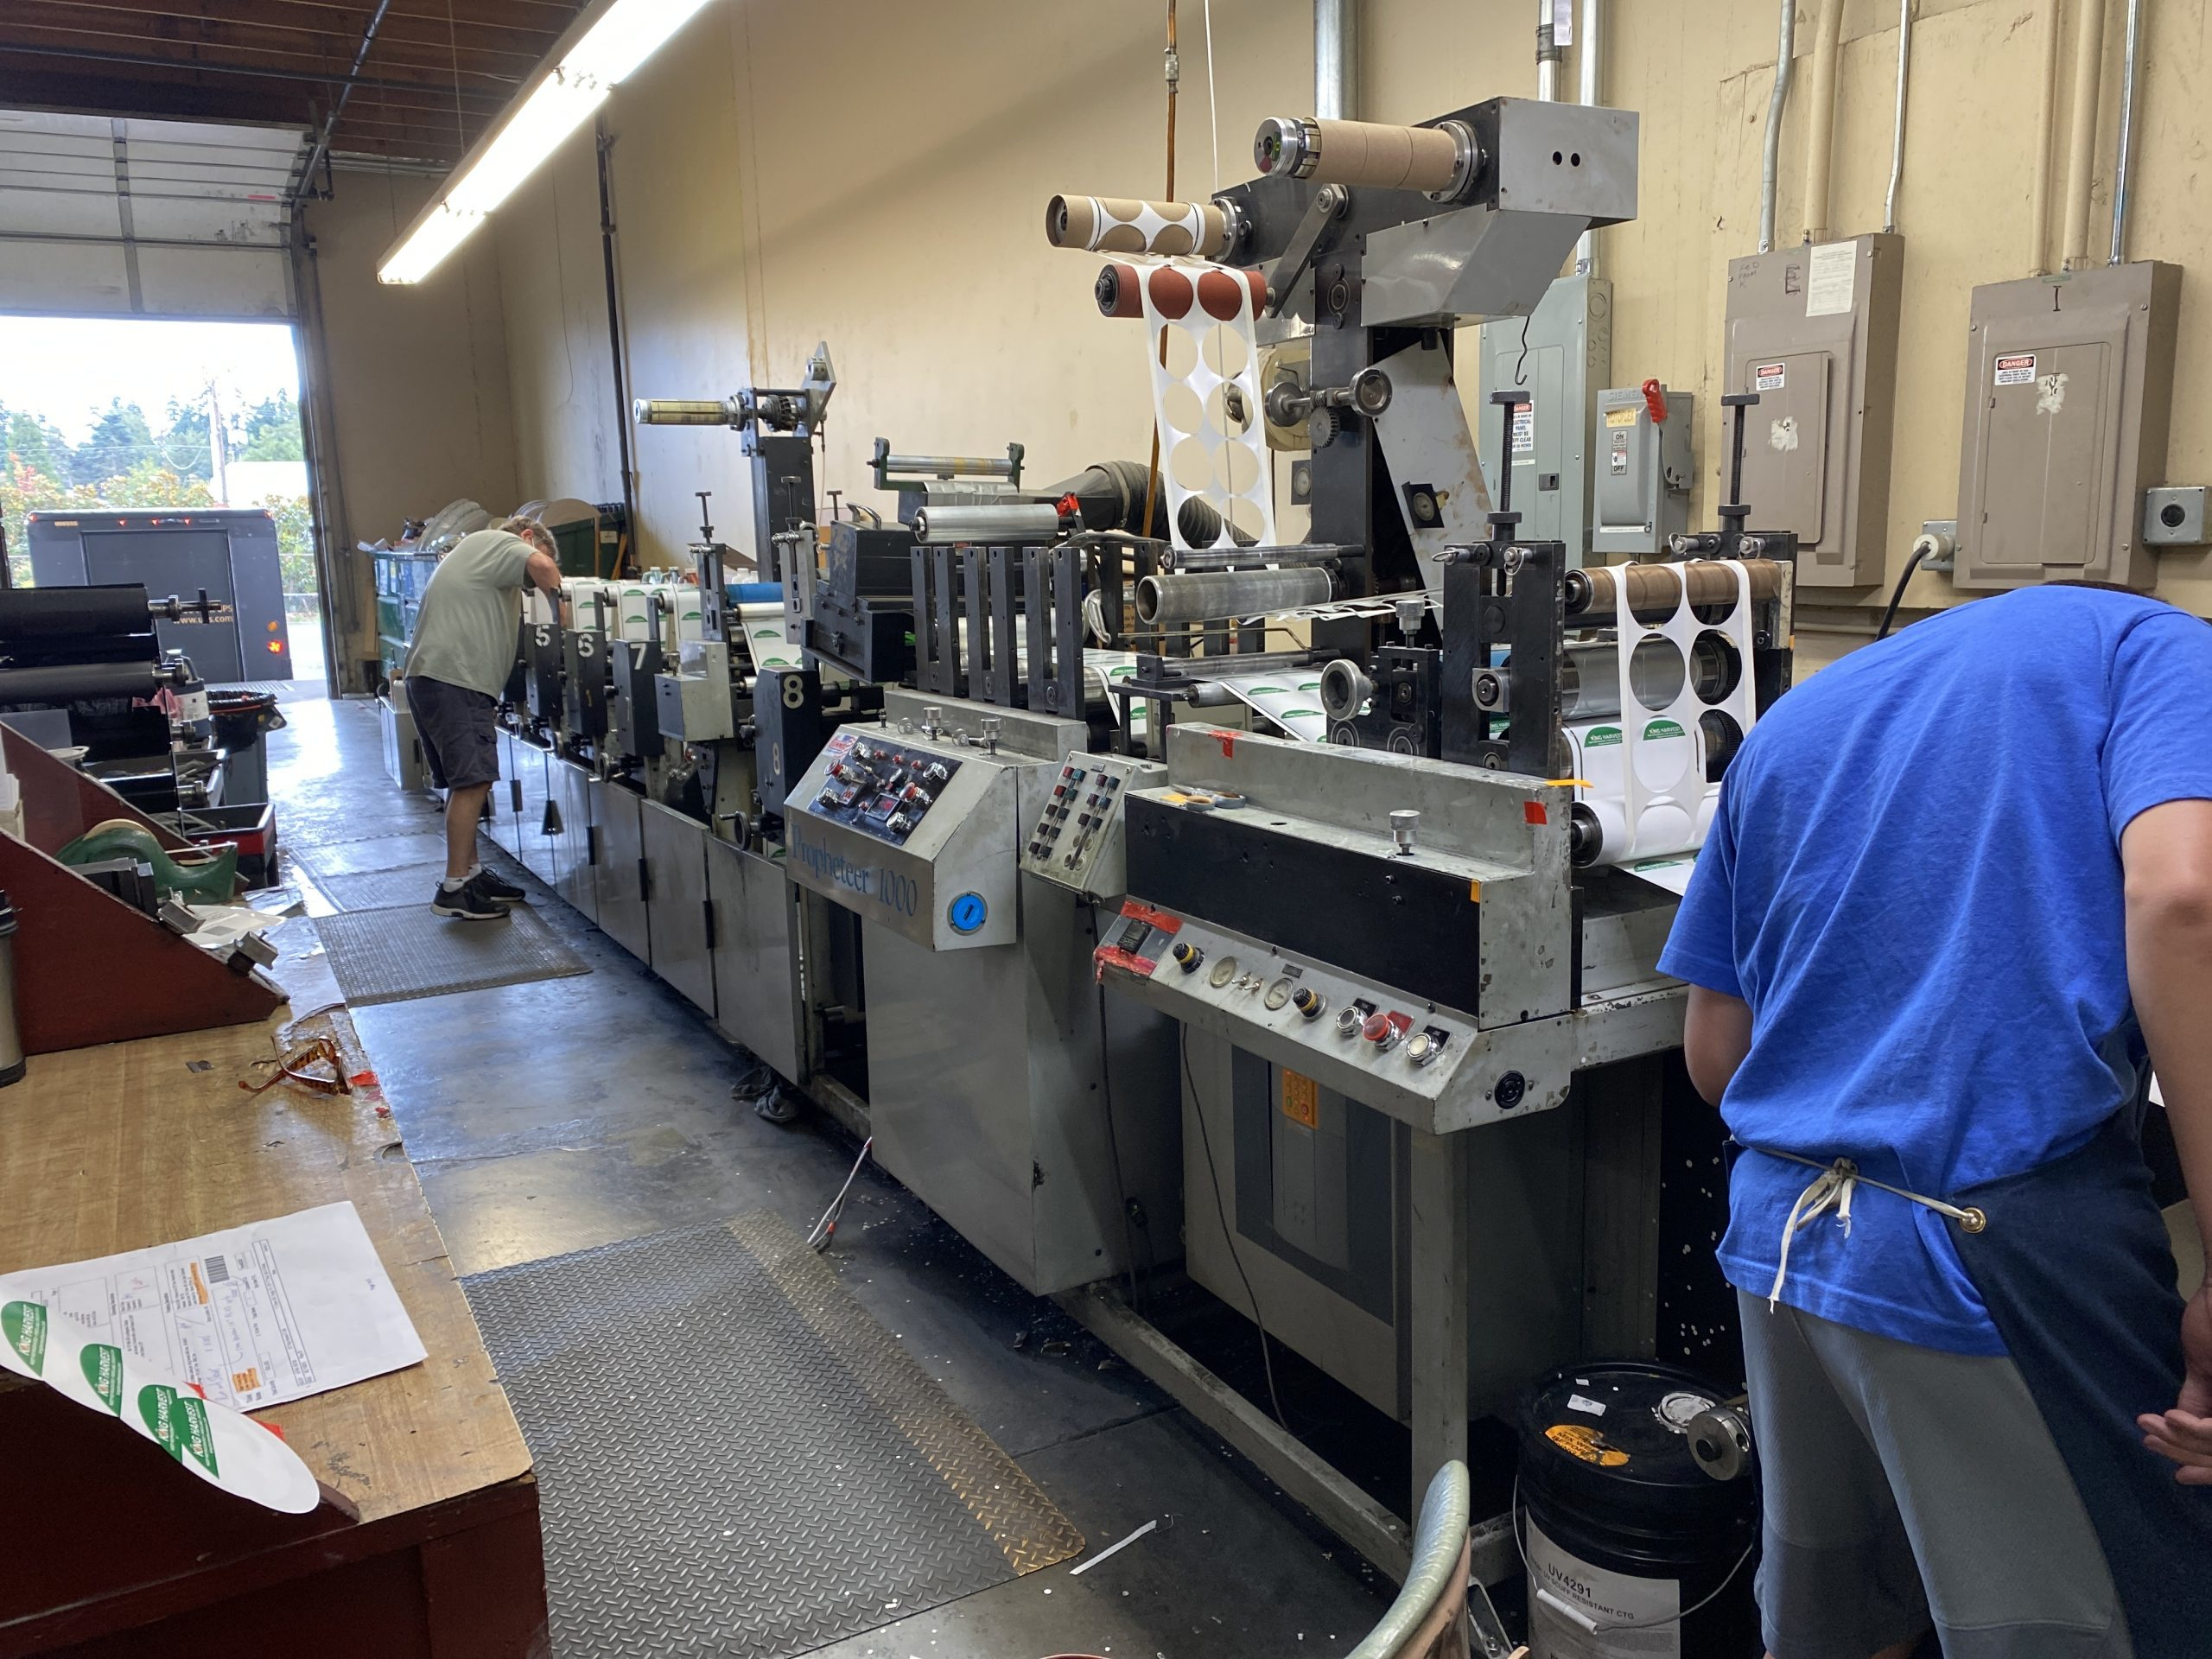 Propheteer 1000 - Used Flexo Printing Presses and Used Flexographic Equipment-7